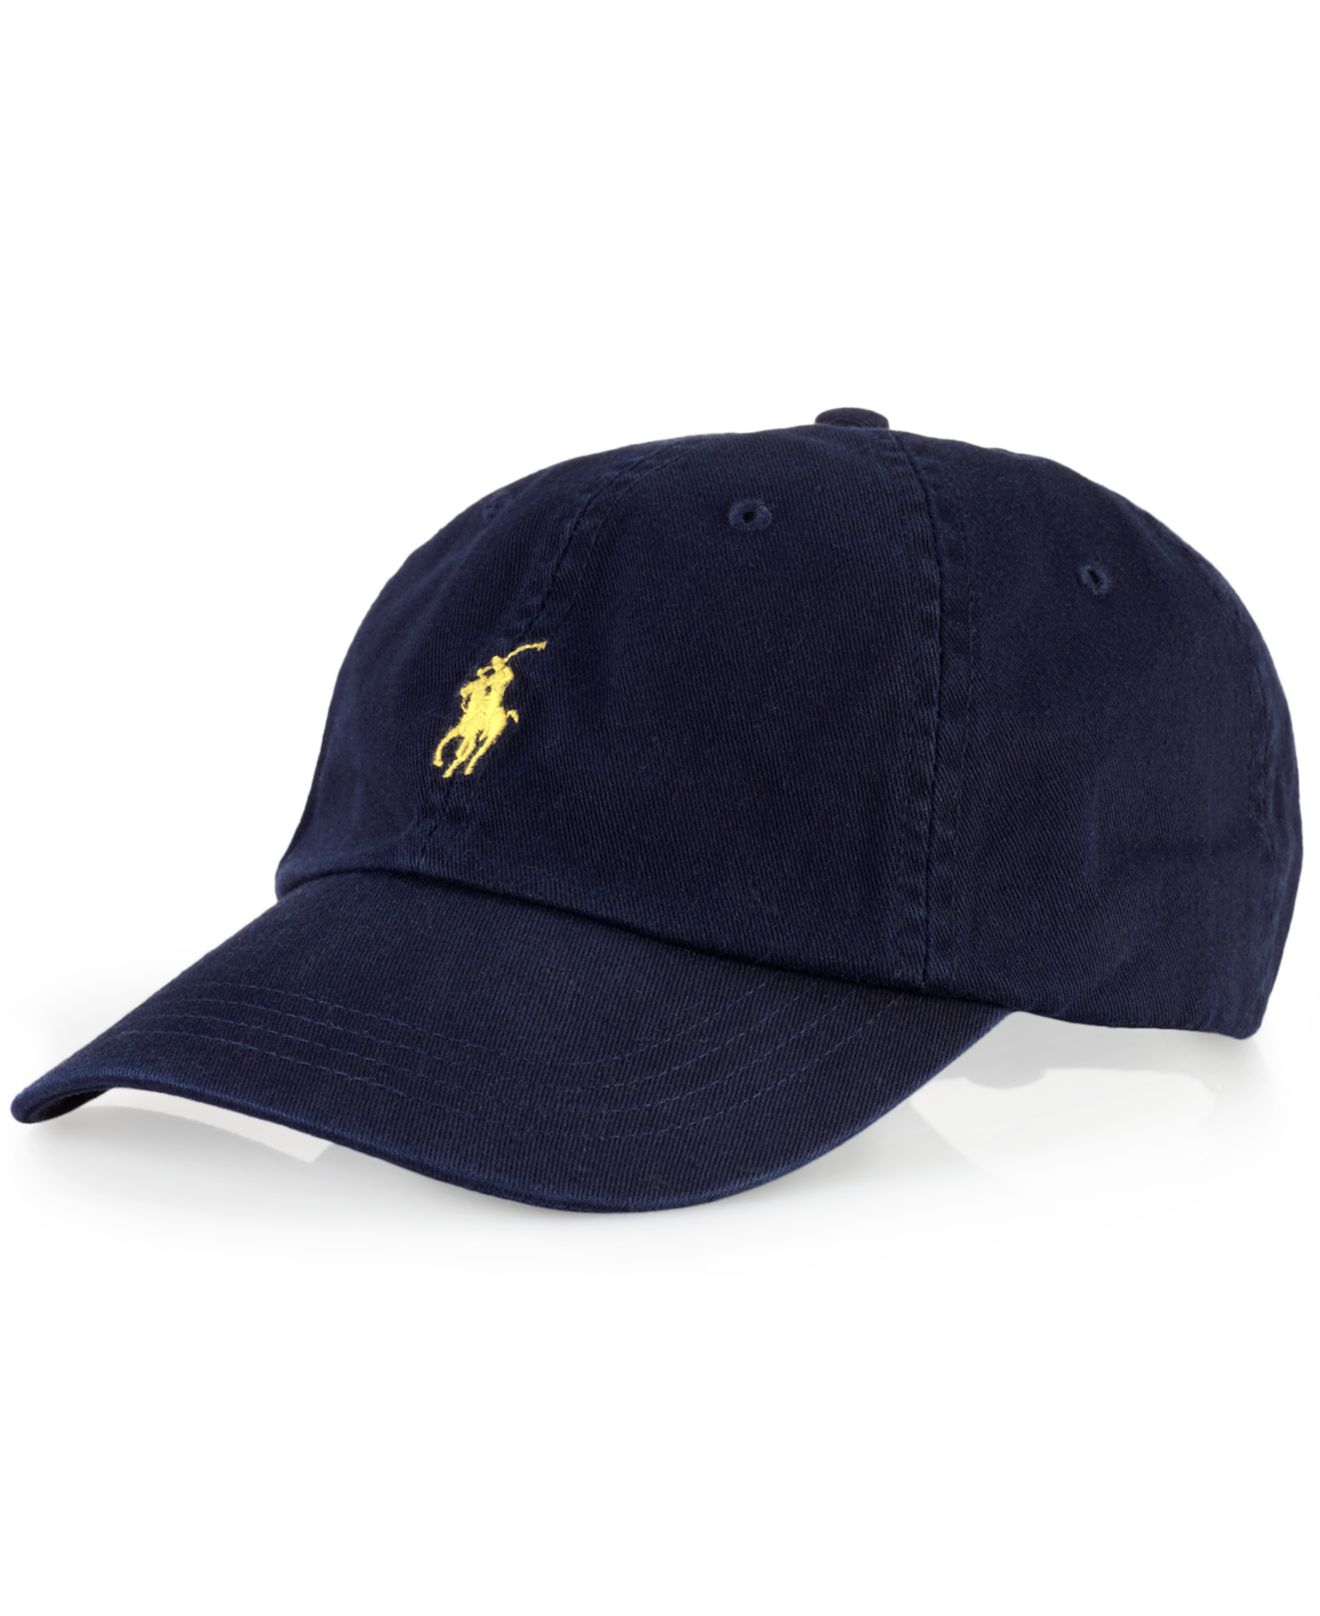 polo ralph lauren core classic sport cap in blue for men relay blue. Black Bedroom Furniture Sets. Home Design Ideas